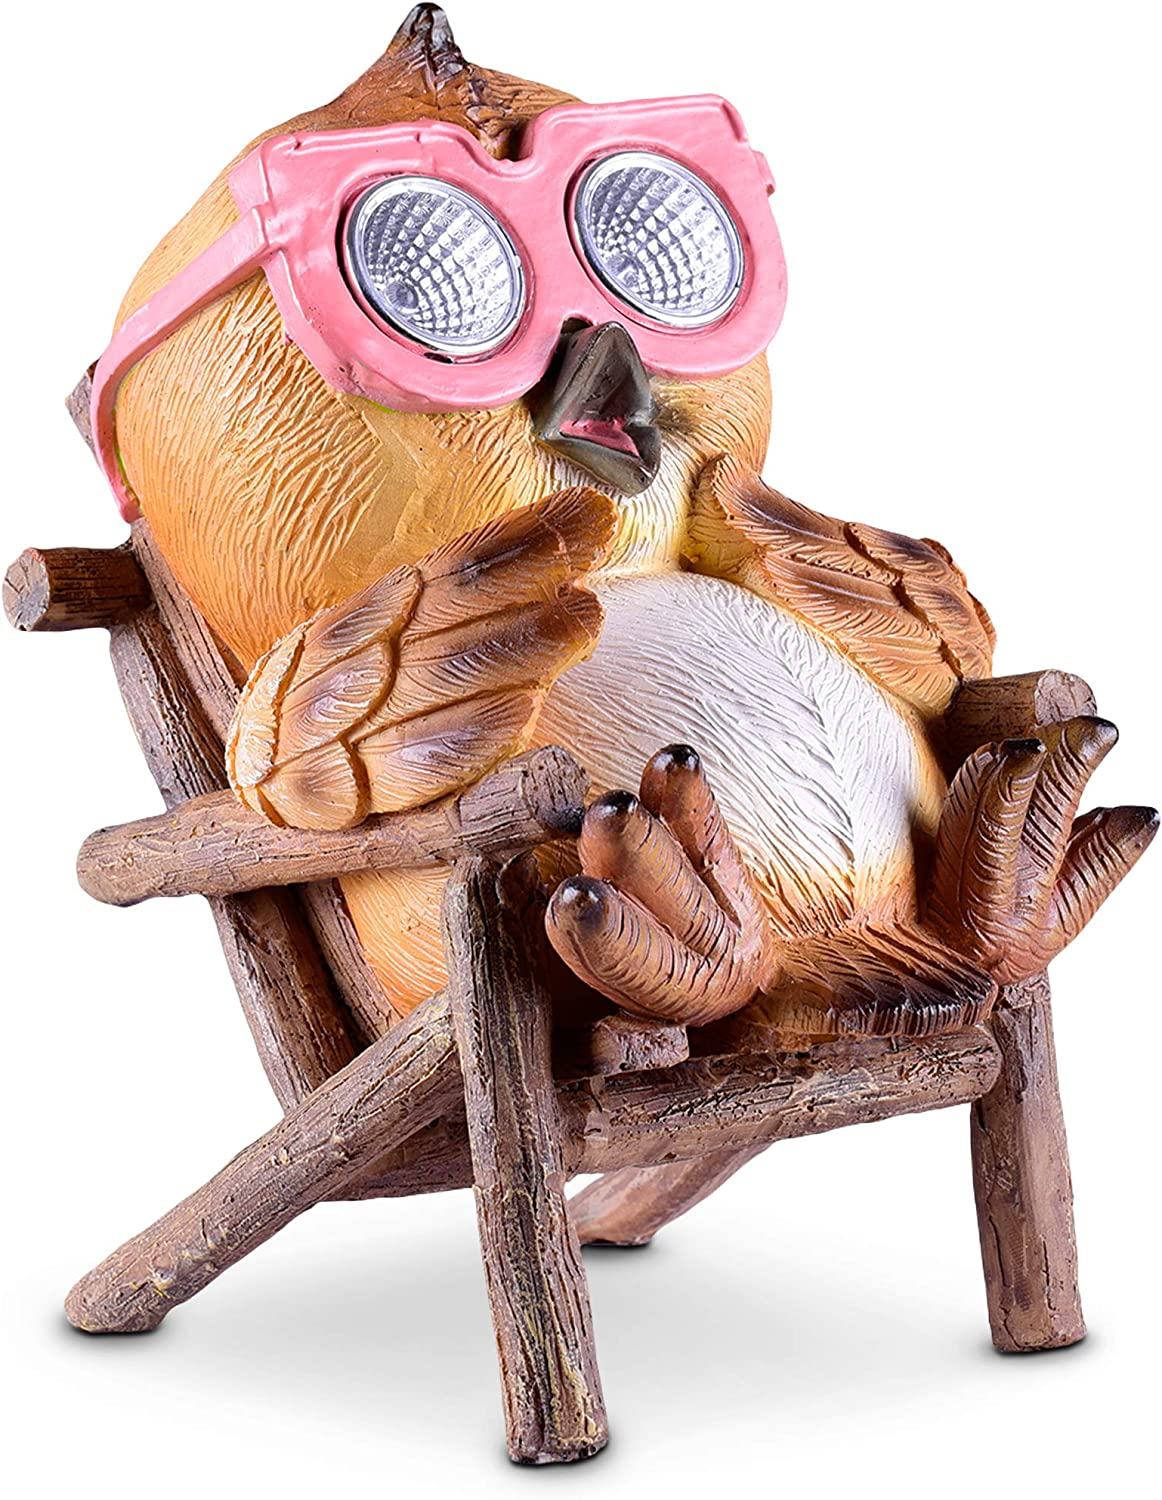 Solar Garden Decorations - Owl Figurine | Outdoor Yard Lawn Decor LED Figure | Light Up Decorative Statue Accents Patio or Deck | Weather Resistant | Great Housewarming Gift Idea (Brown - 1 Pack)